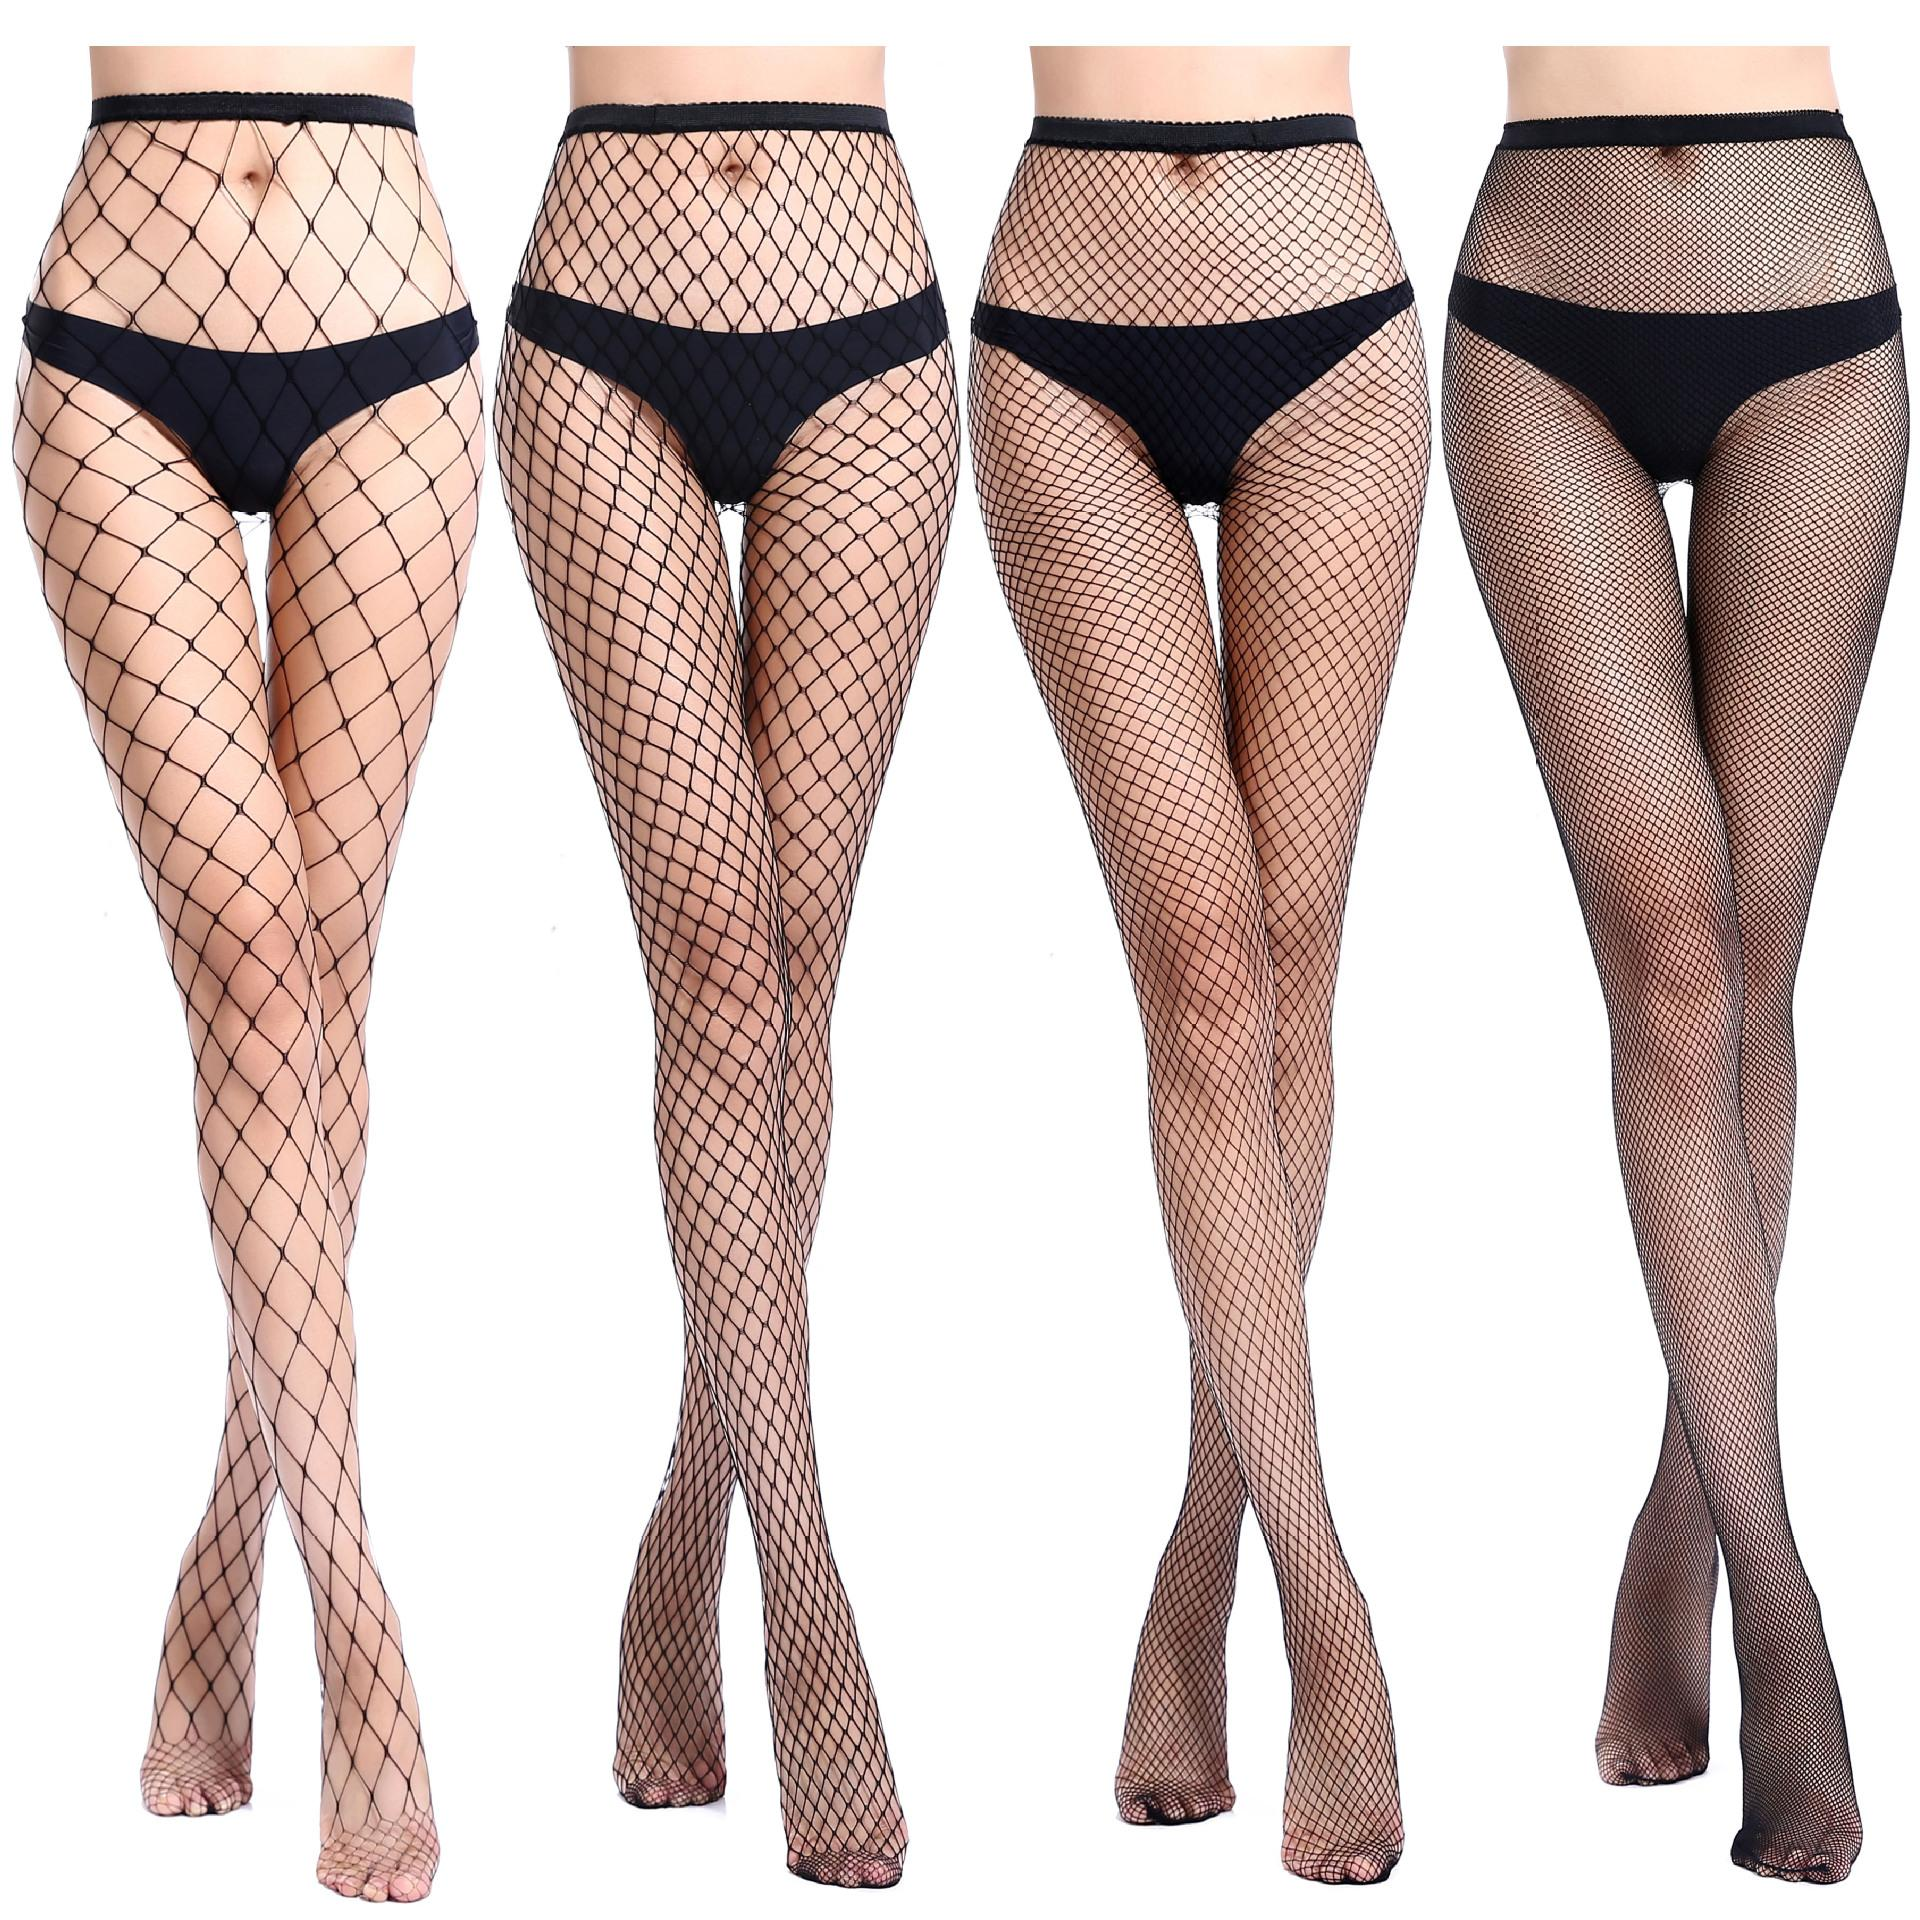 Squeaker reccomend Gothic fishnet pantyhose